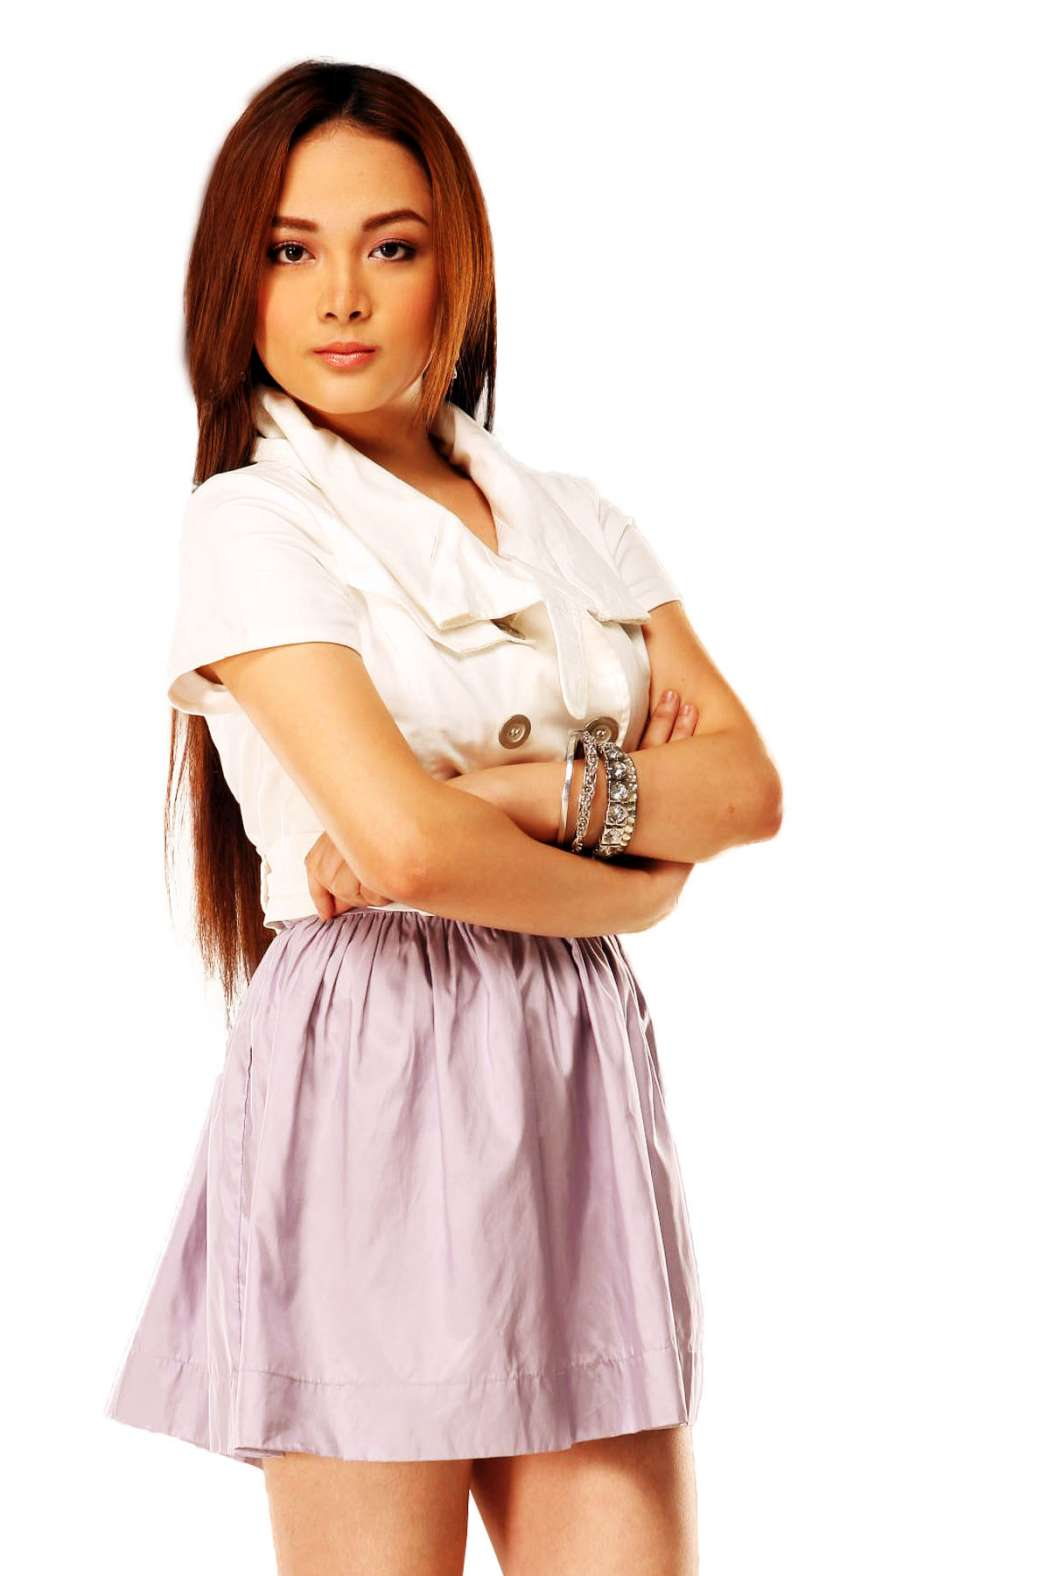 Meg Imperial in Bagets: Just Got Lucky (2011)